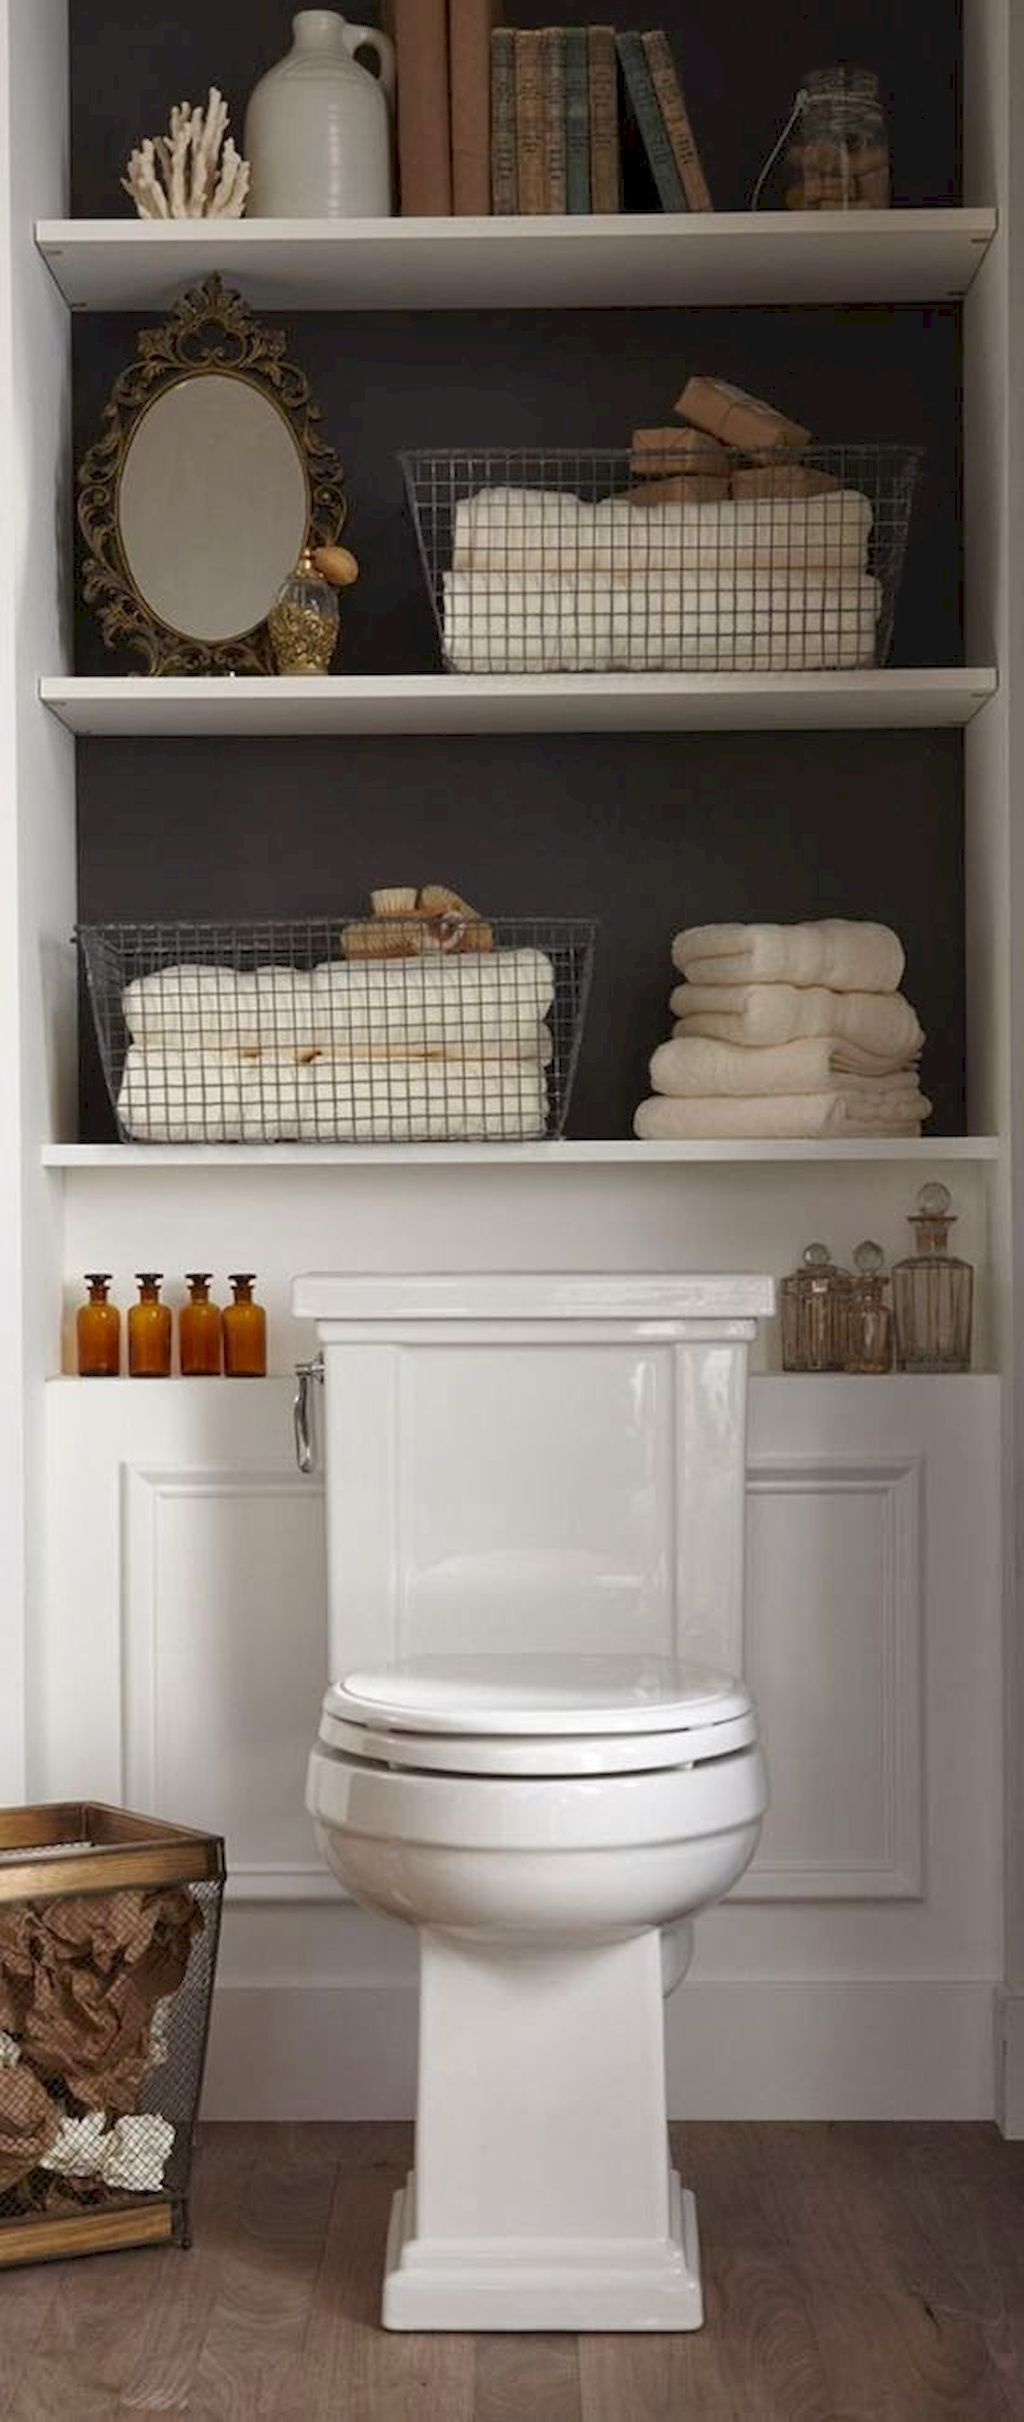 Cool How To Create Bathroom That Fit Best Toilet Closet,